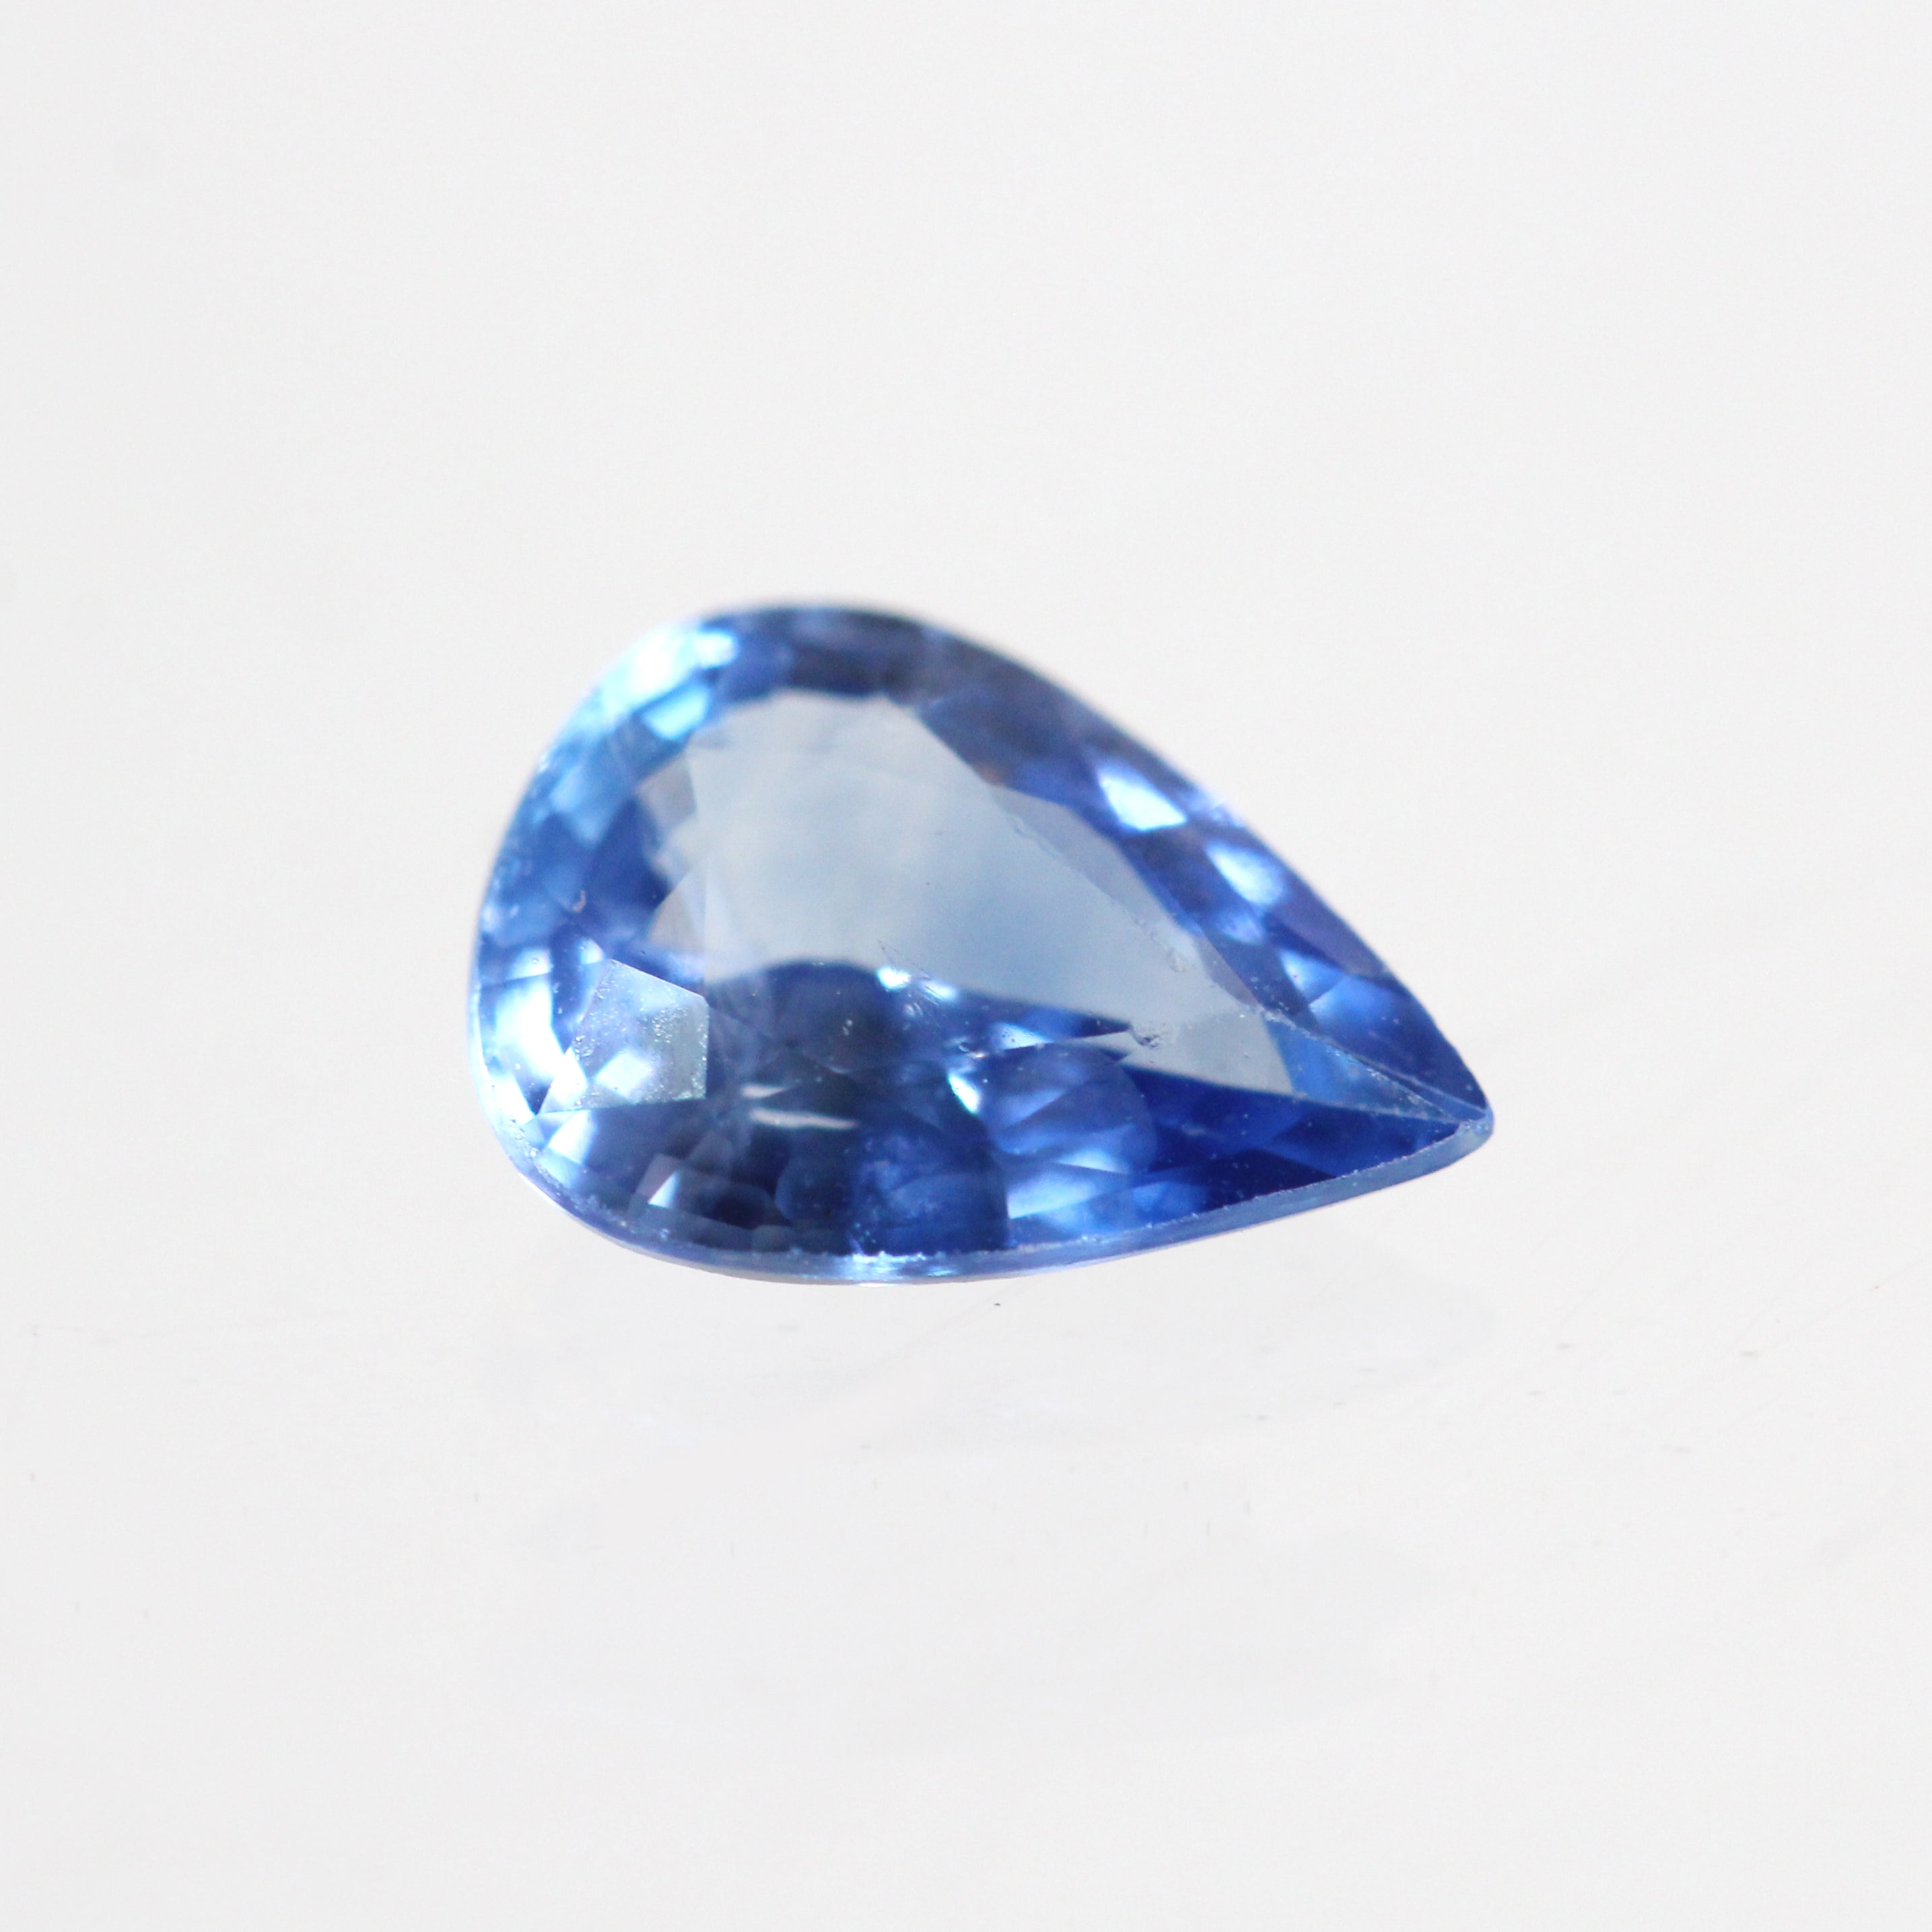 1 ct Pear Cut Sapphire for Custom Work - Inventory Code S7.8